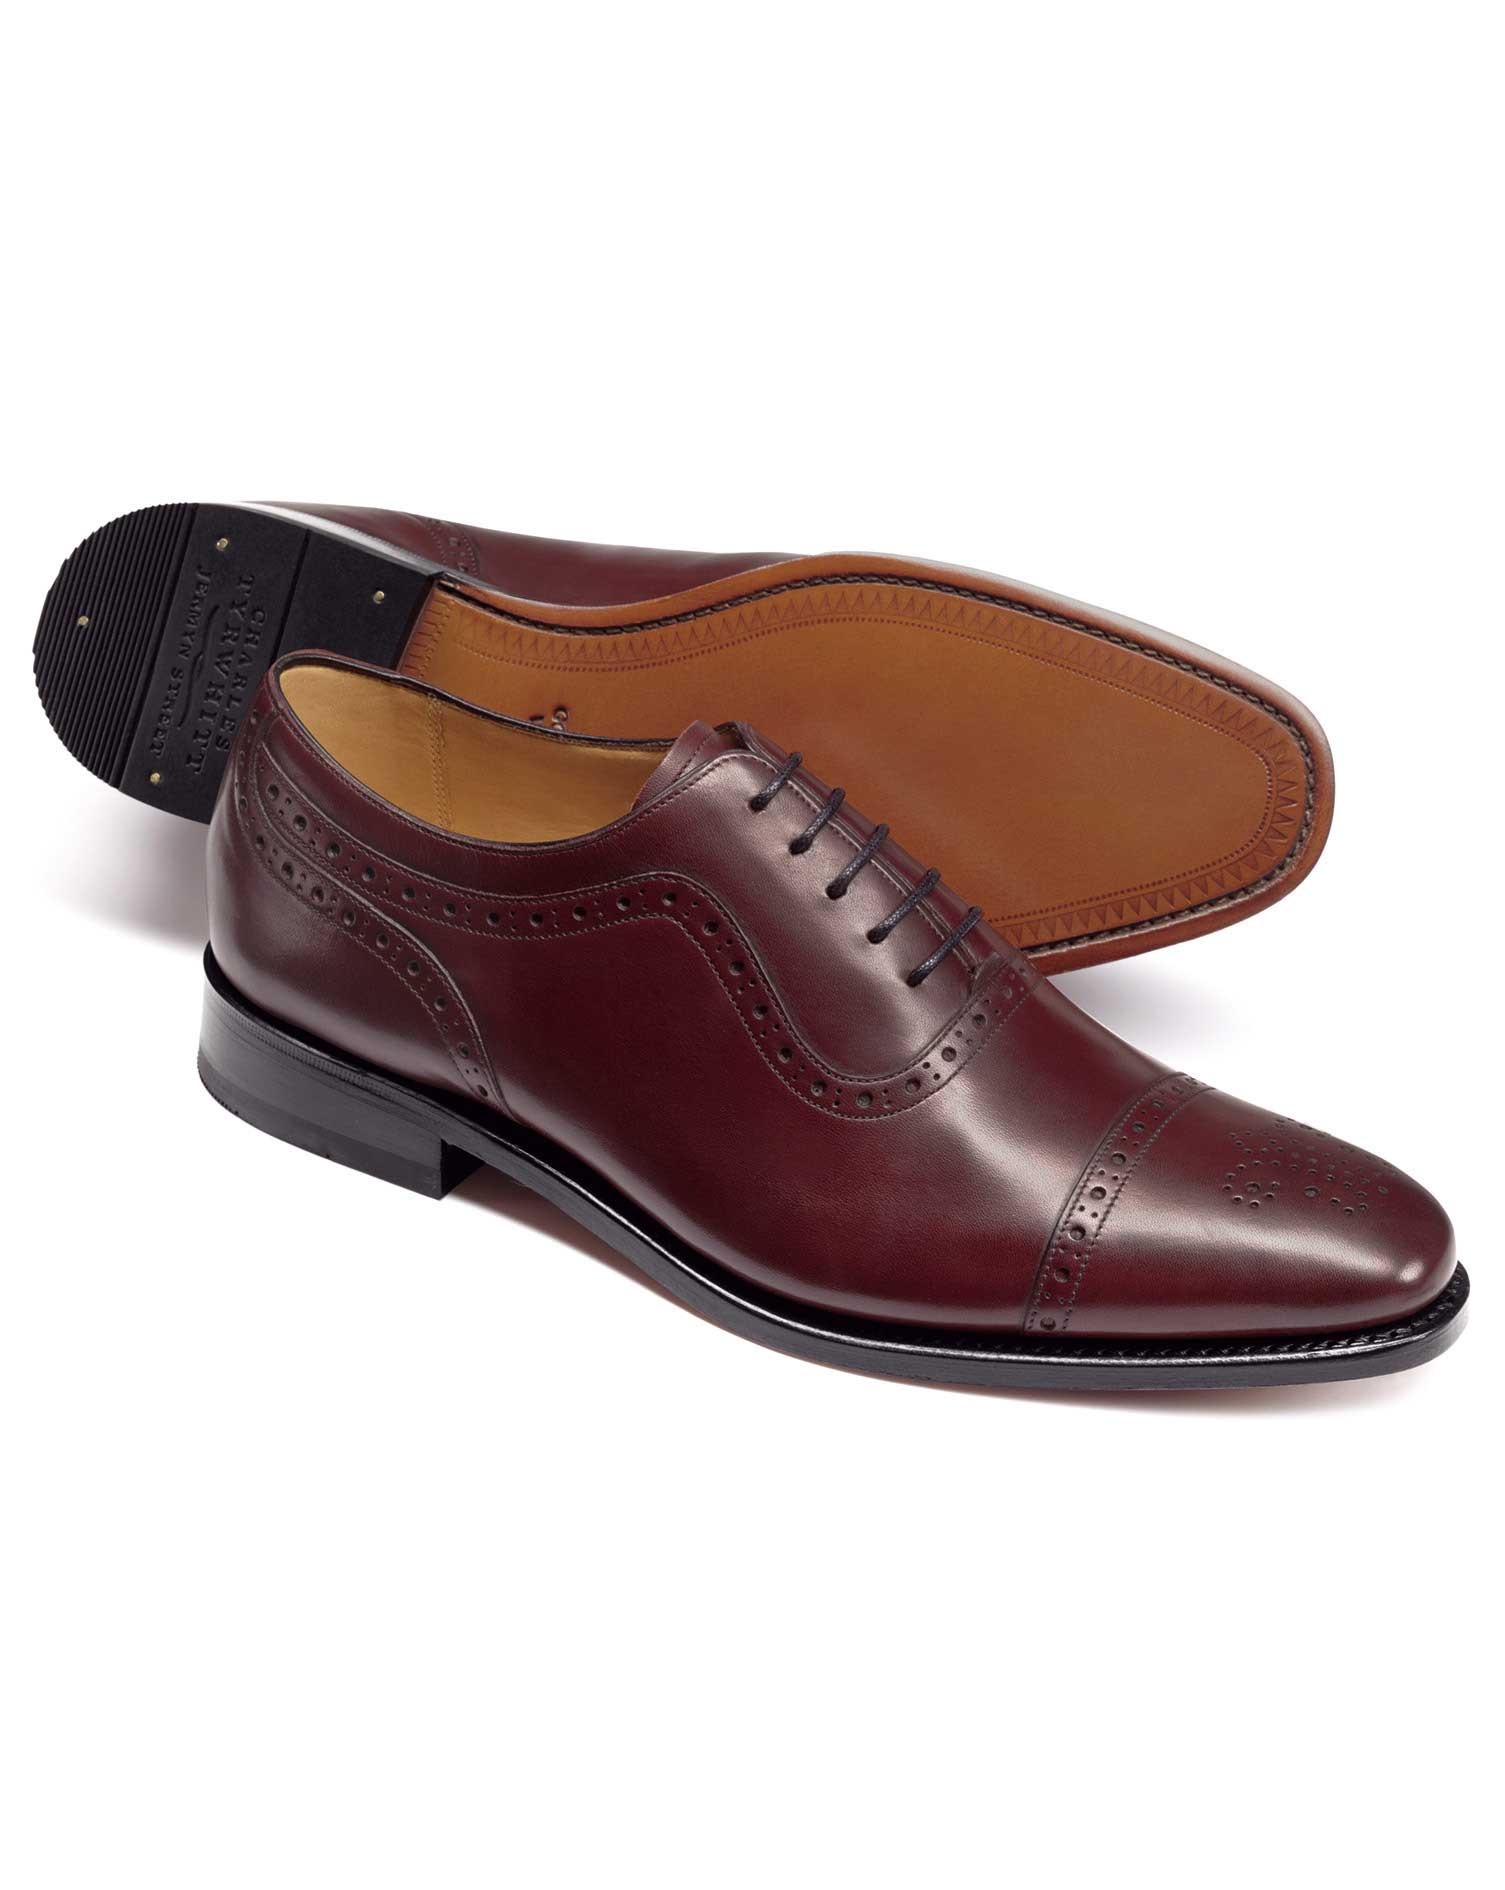 Burgundy Goodyear Welted Oxford Brogue Shoes Size 9.5 R by Charles Tyrwhitt from Charles Tyrwhitt